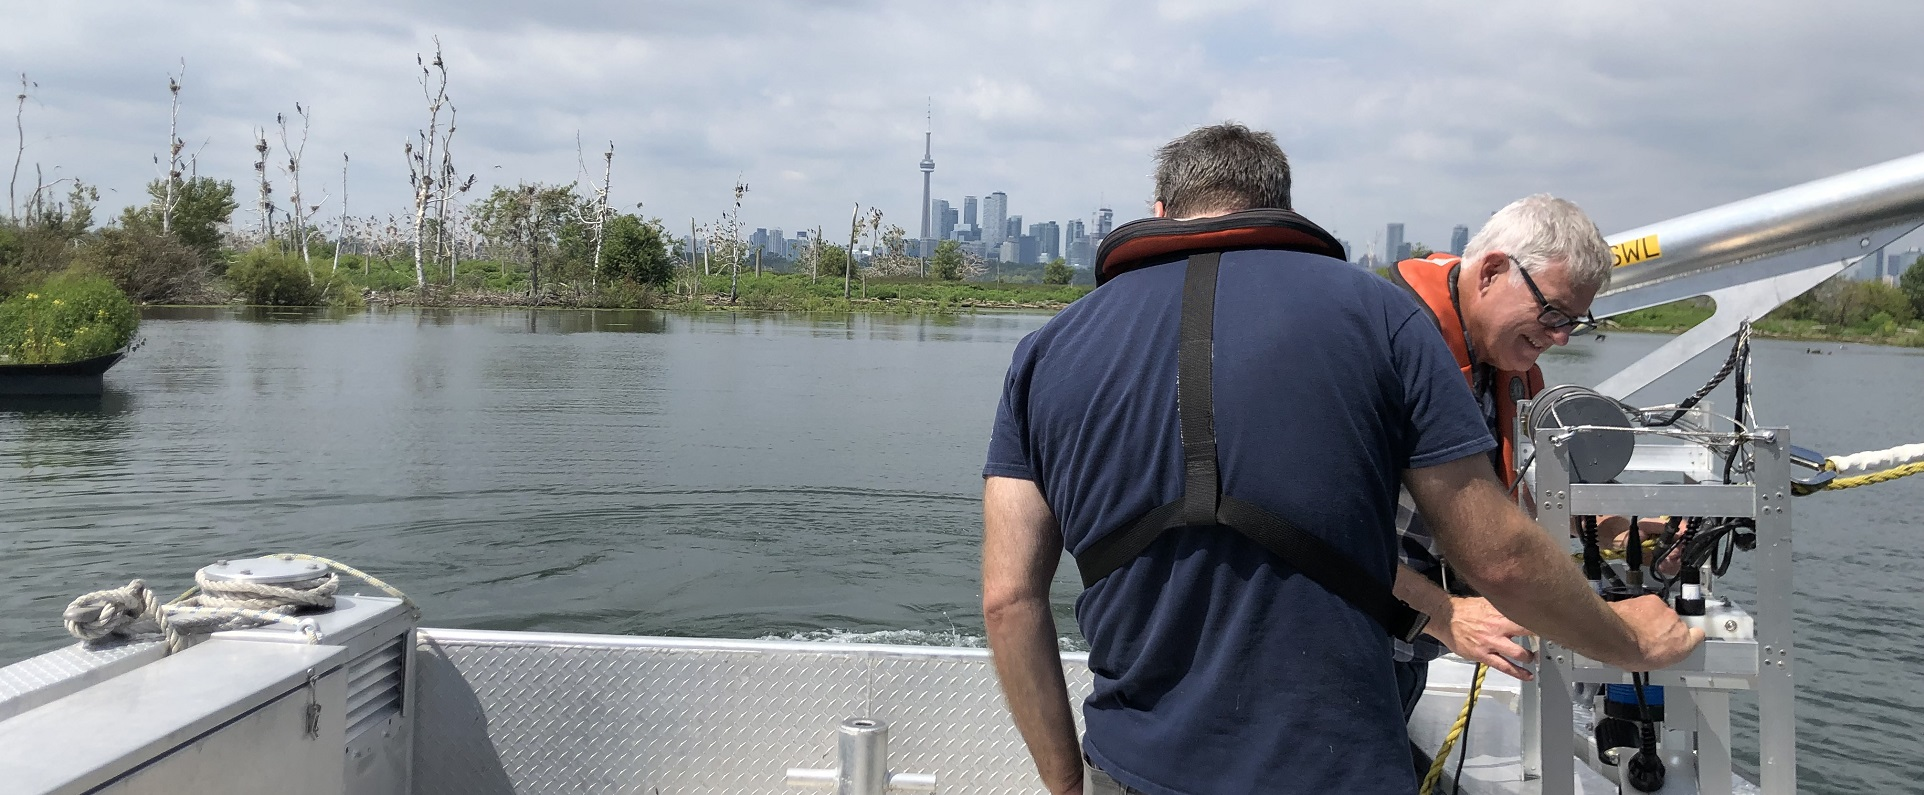 TRCA team conducts aesthetics monitoring along Toronto waterfront